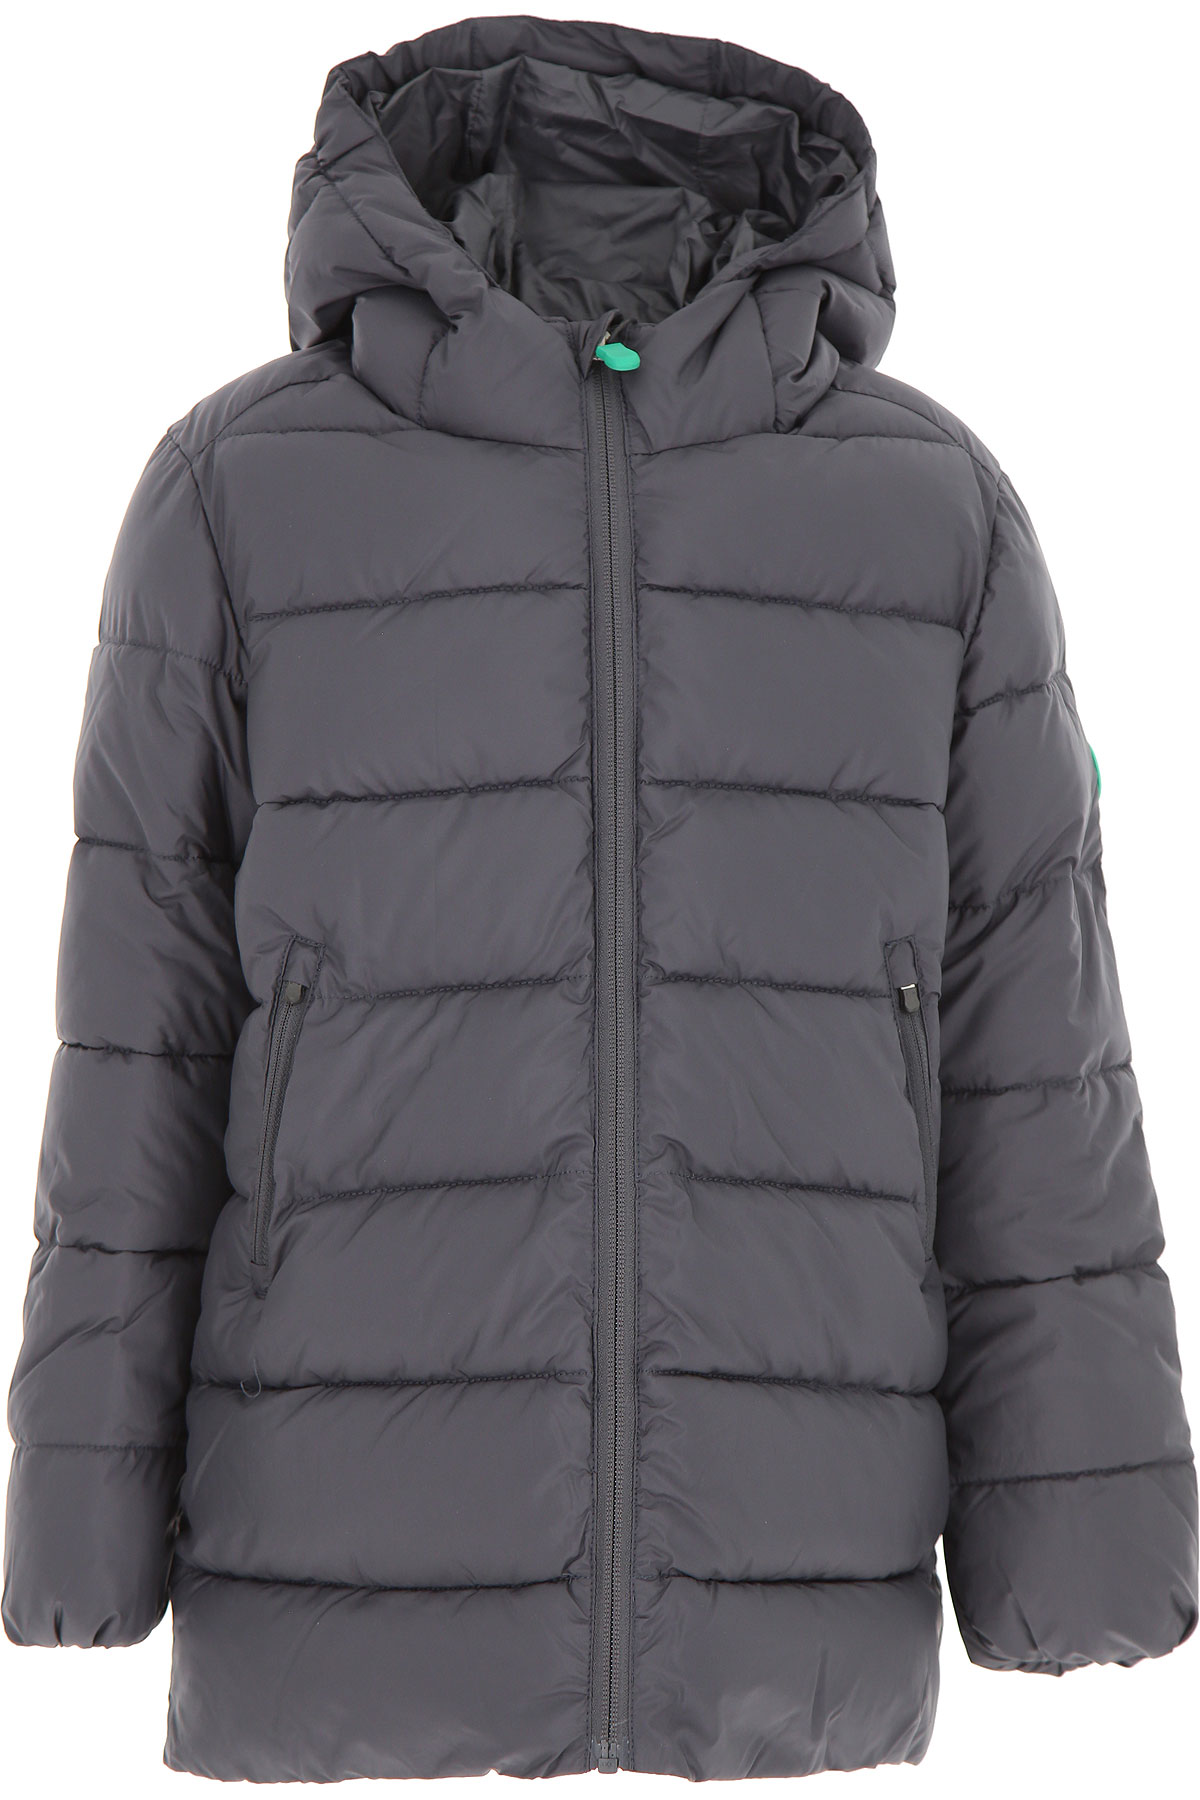 Save the Duck Boys Down Jacket for Kids, Puffer Ski Jacket On Sale, Ebony Grey, Polyester Recycled, 2019, 10Y 12Y 4Y 8Y